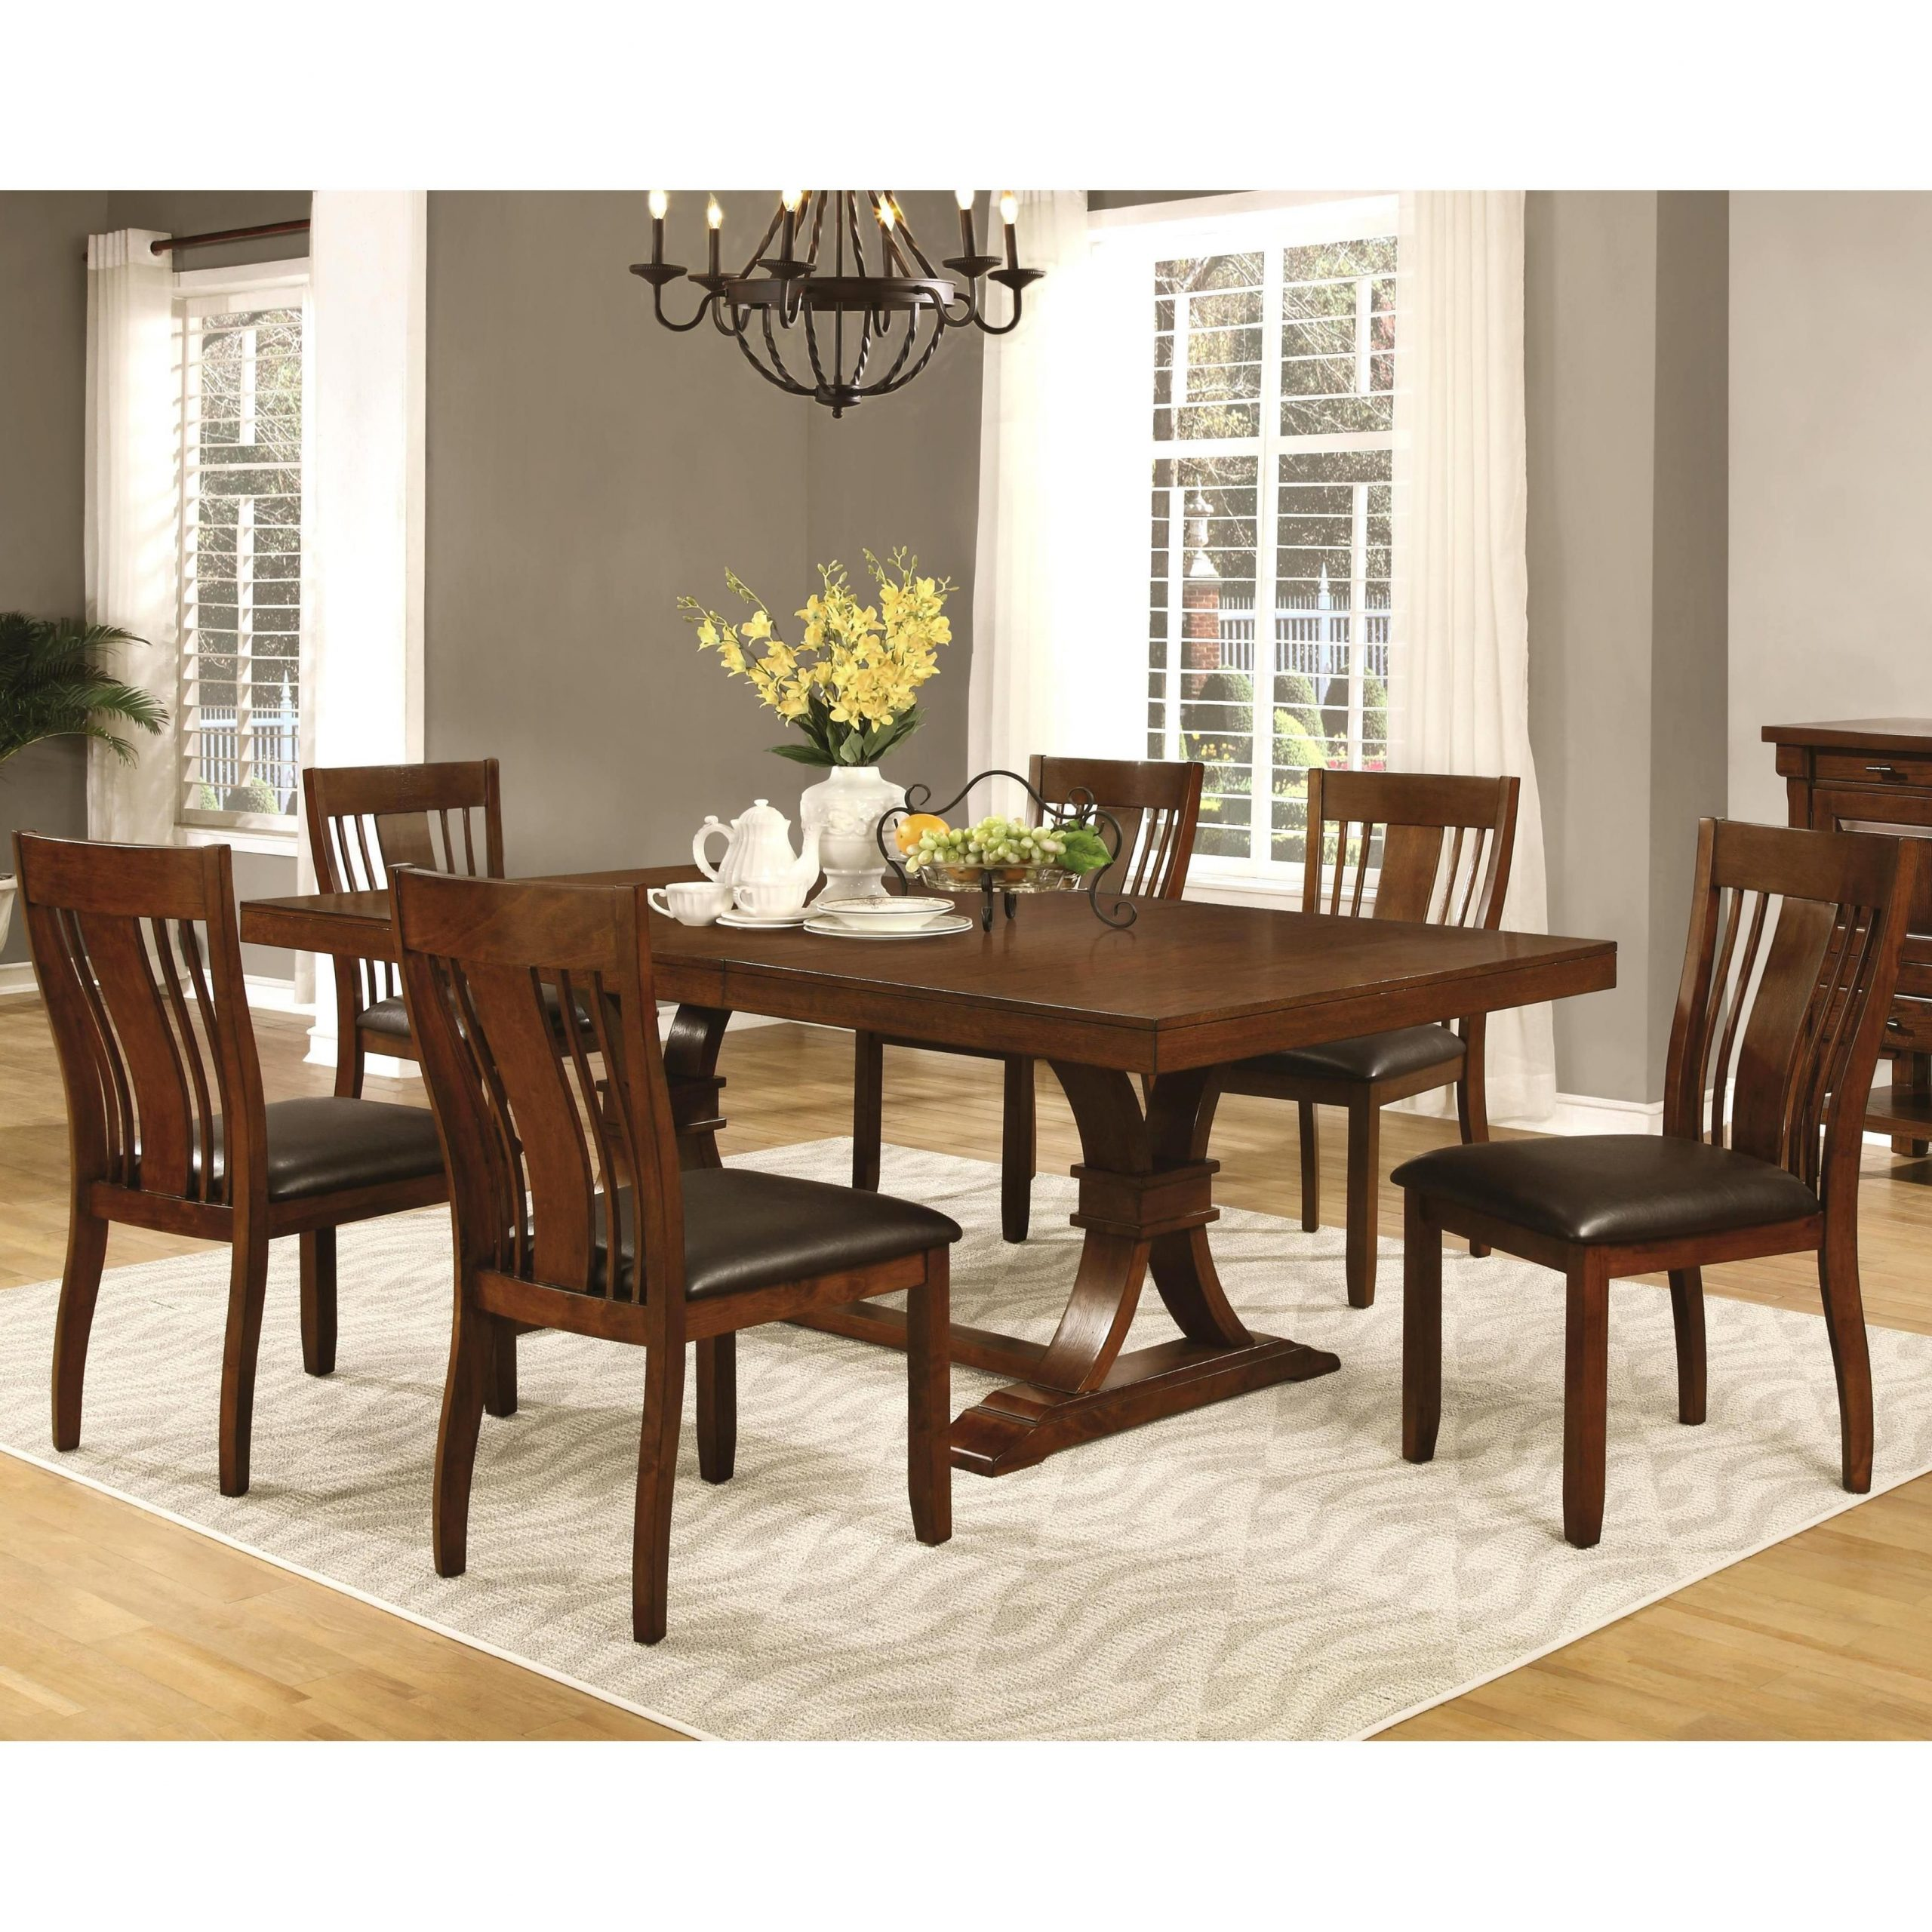 Trendy Transitional 6 Seating Casual Dining Tables With Oxford Transitional Mission Style Dining Set (1 Table, 6 (Gallery 1 of 30)